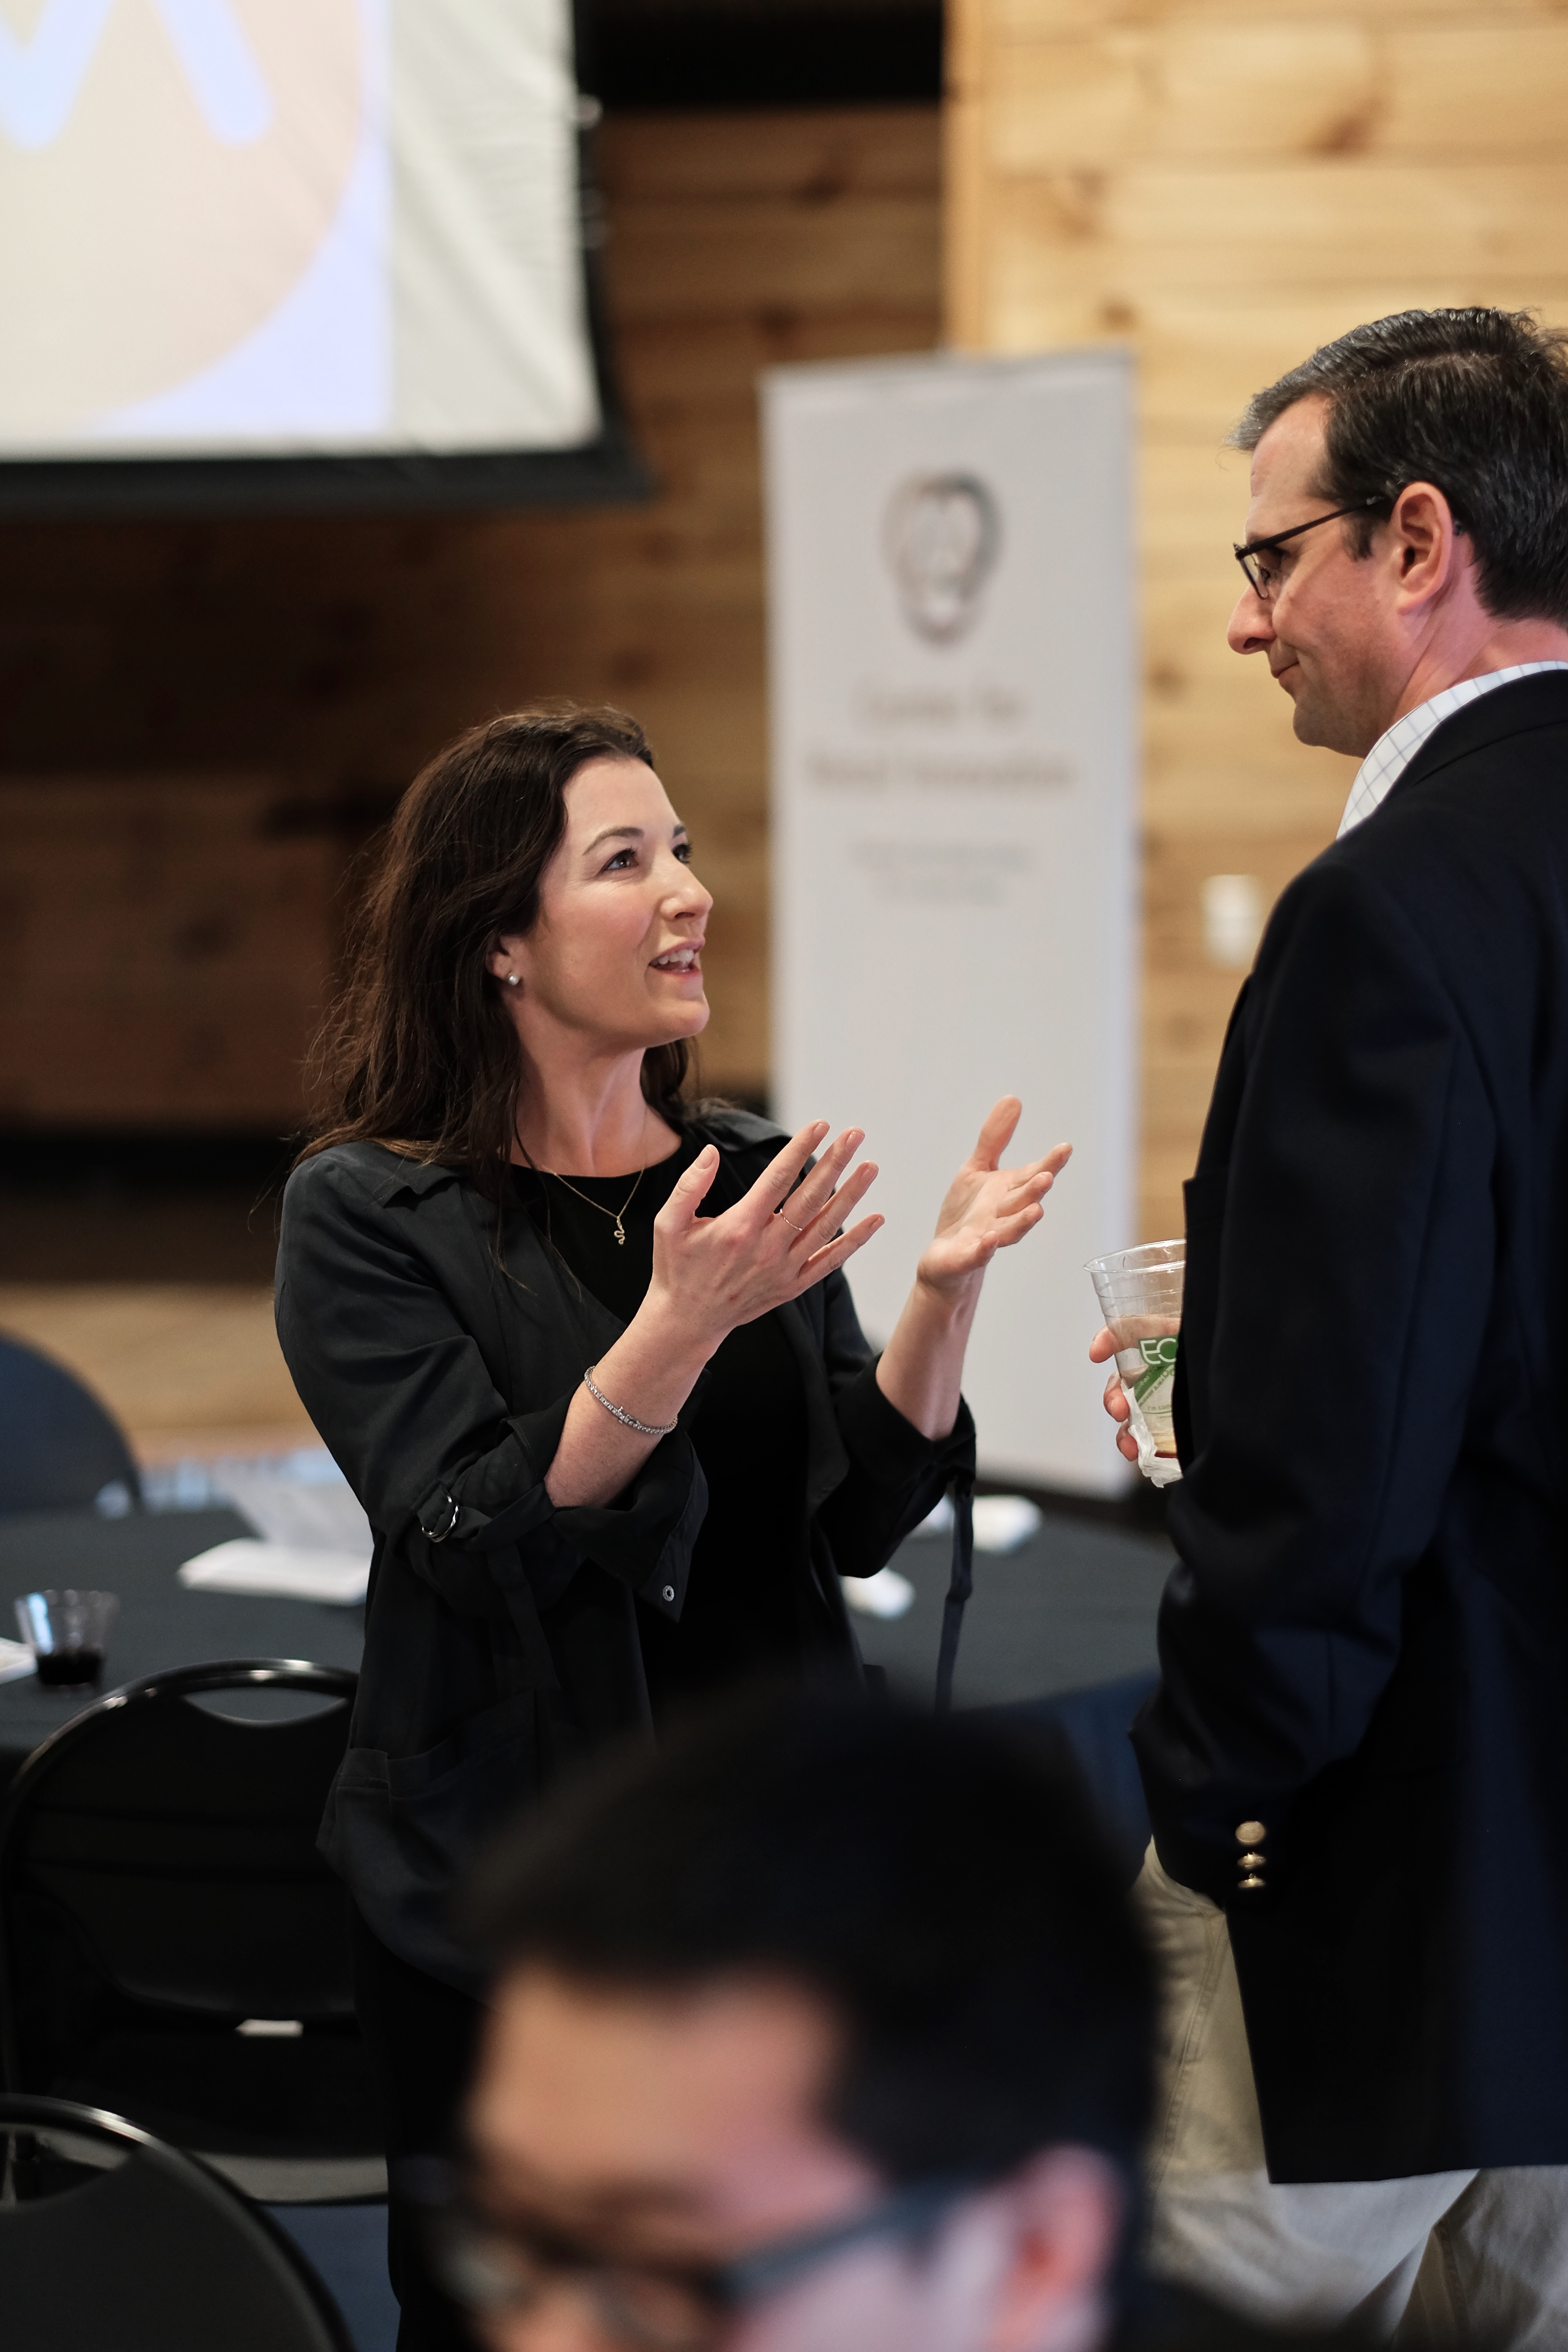 The 2016 Marketing Analytics Summit / Inmar Analytics Forum held their reception and dinner in the Barn on the WFU Campus.